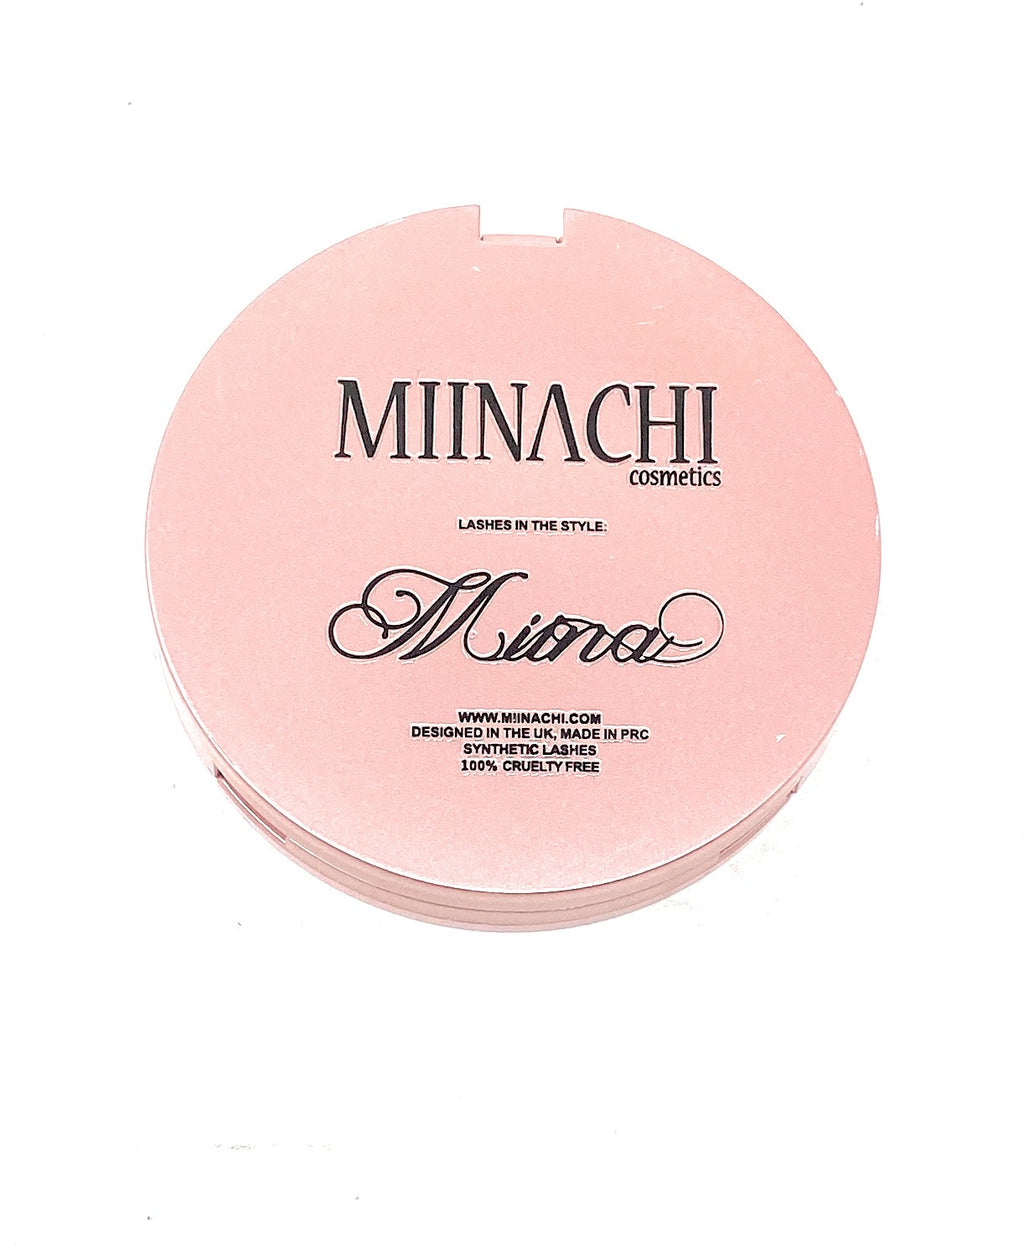 Magnetic Lash in the style Miina, Fluffy, Reusable, Flexible, Lightweight Lashes with Mirror